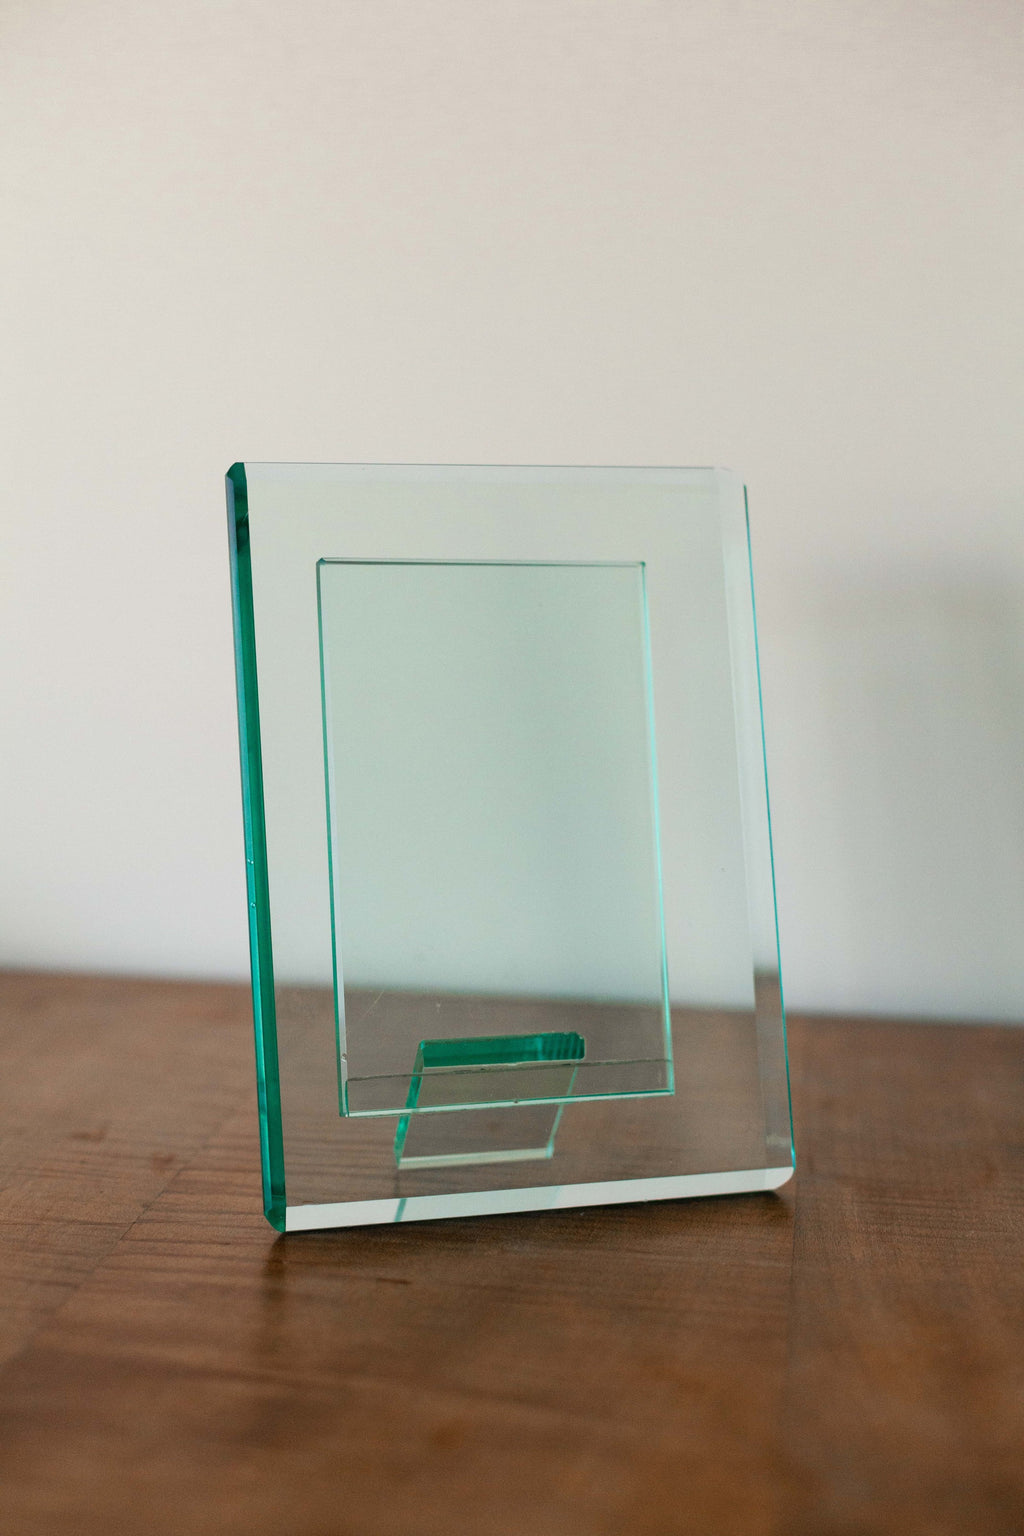 Tinted Green Glass Photo Frame - Fallow Home.